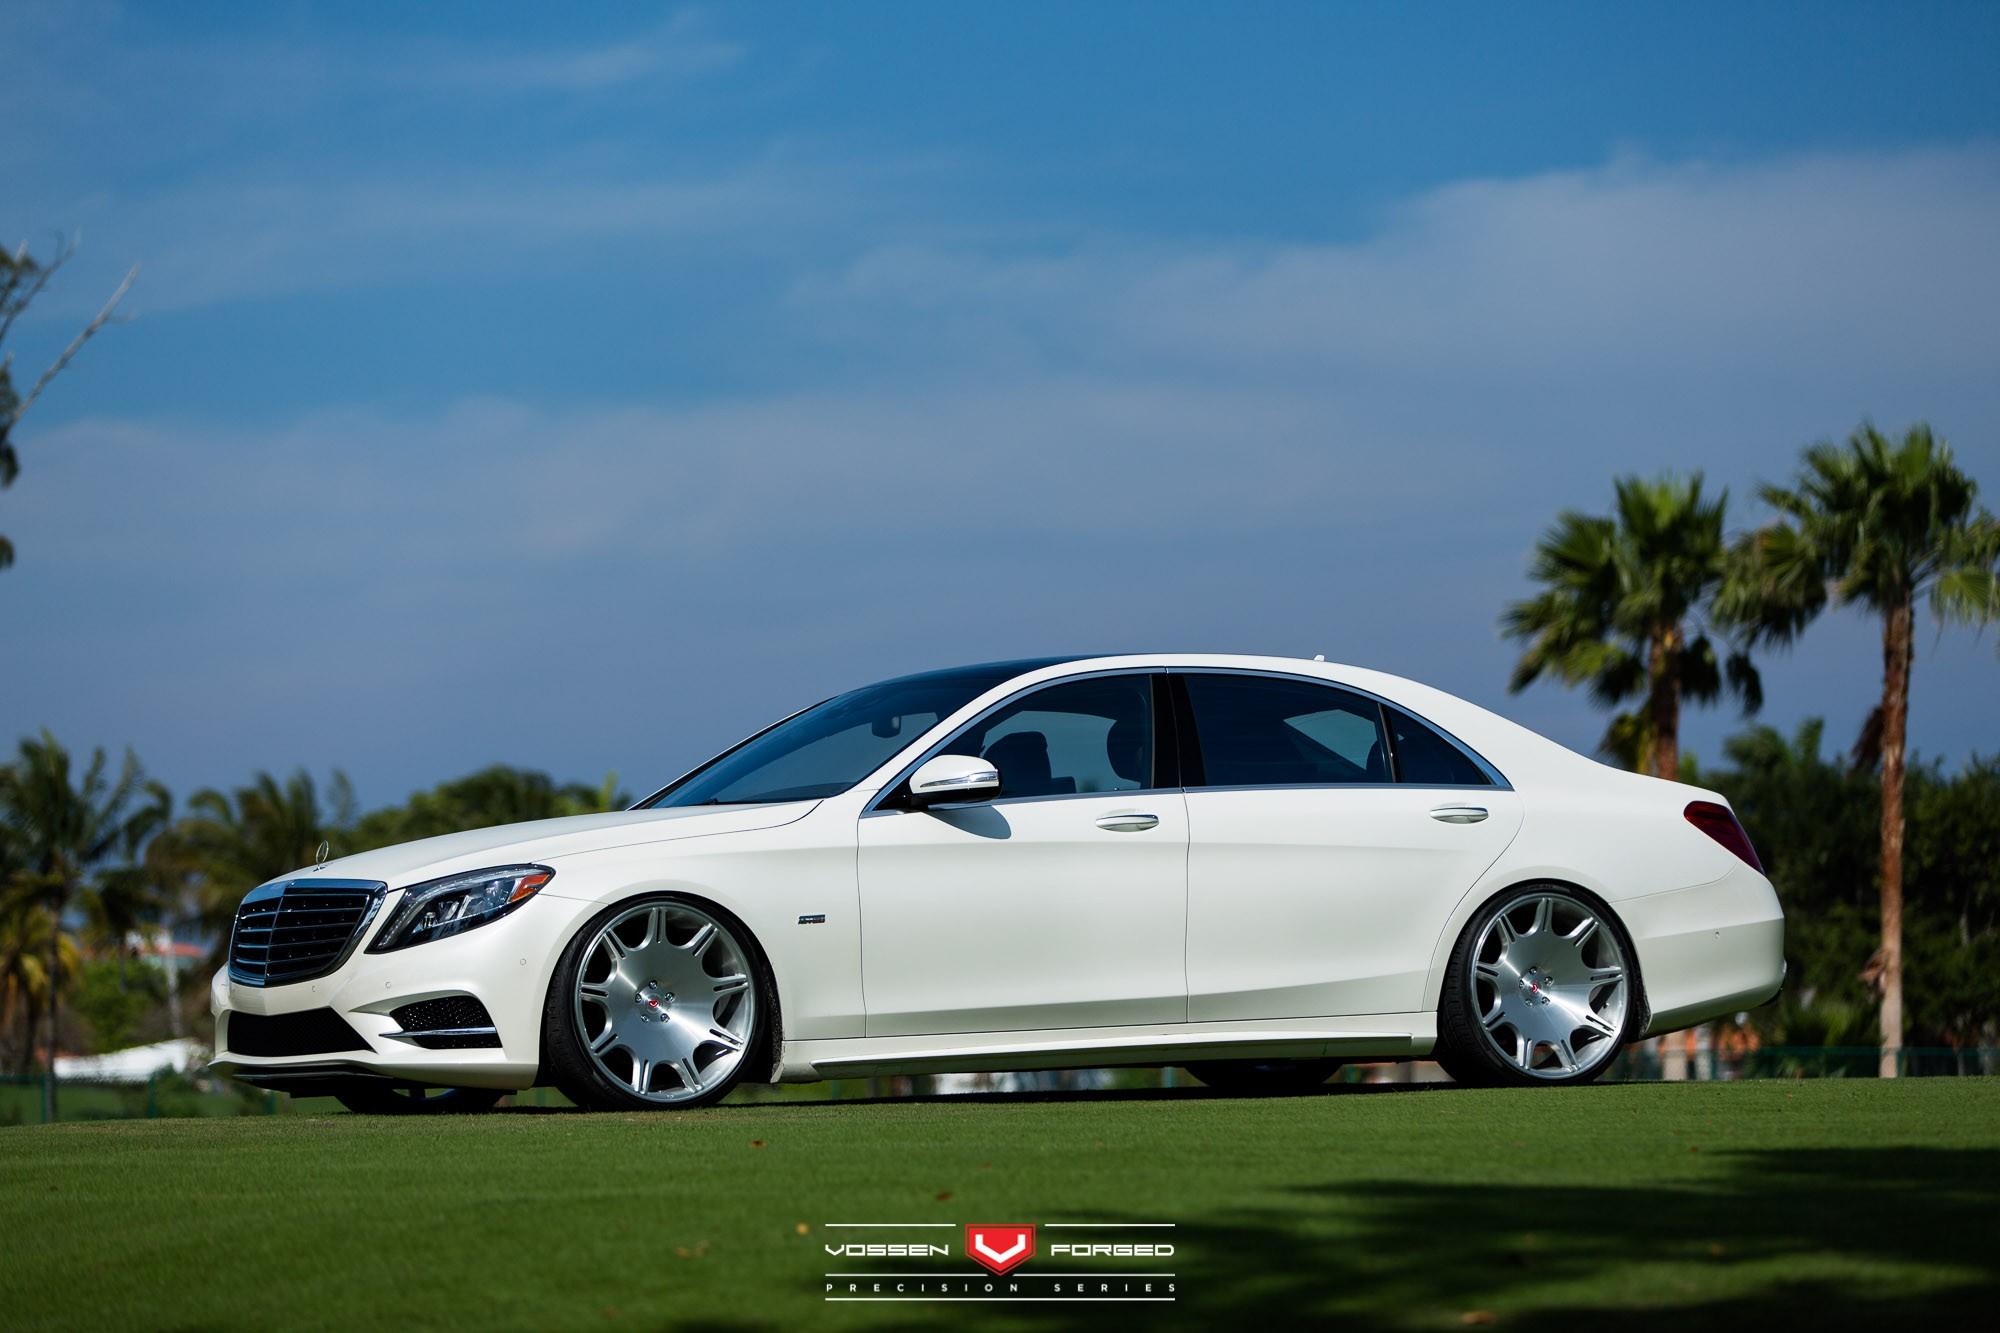 430595 Parking Brake Adjustment besides Renntech Mercedes S550 Gets The Vip Stance And Vossen Wheels Video Photo Gallery 98296 in addition Sedan moreover Mercedes Benz additionally Mercedes Benz type 210. on mercedes benz e350 sedan